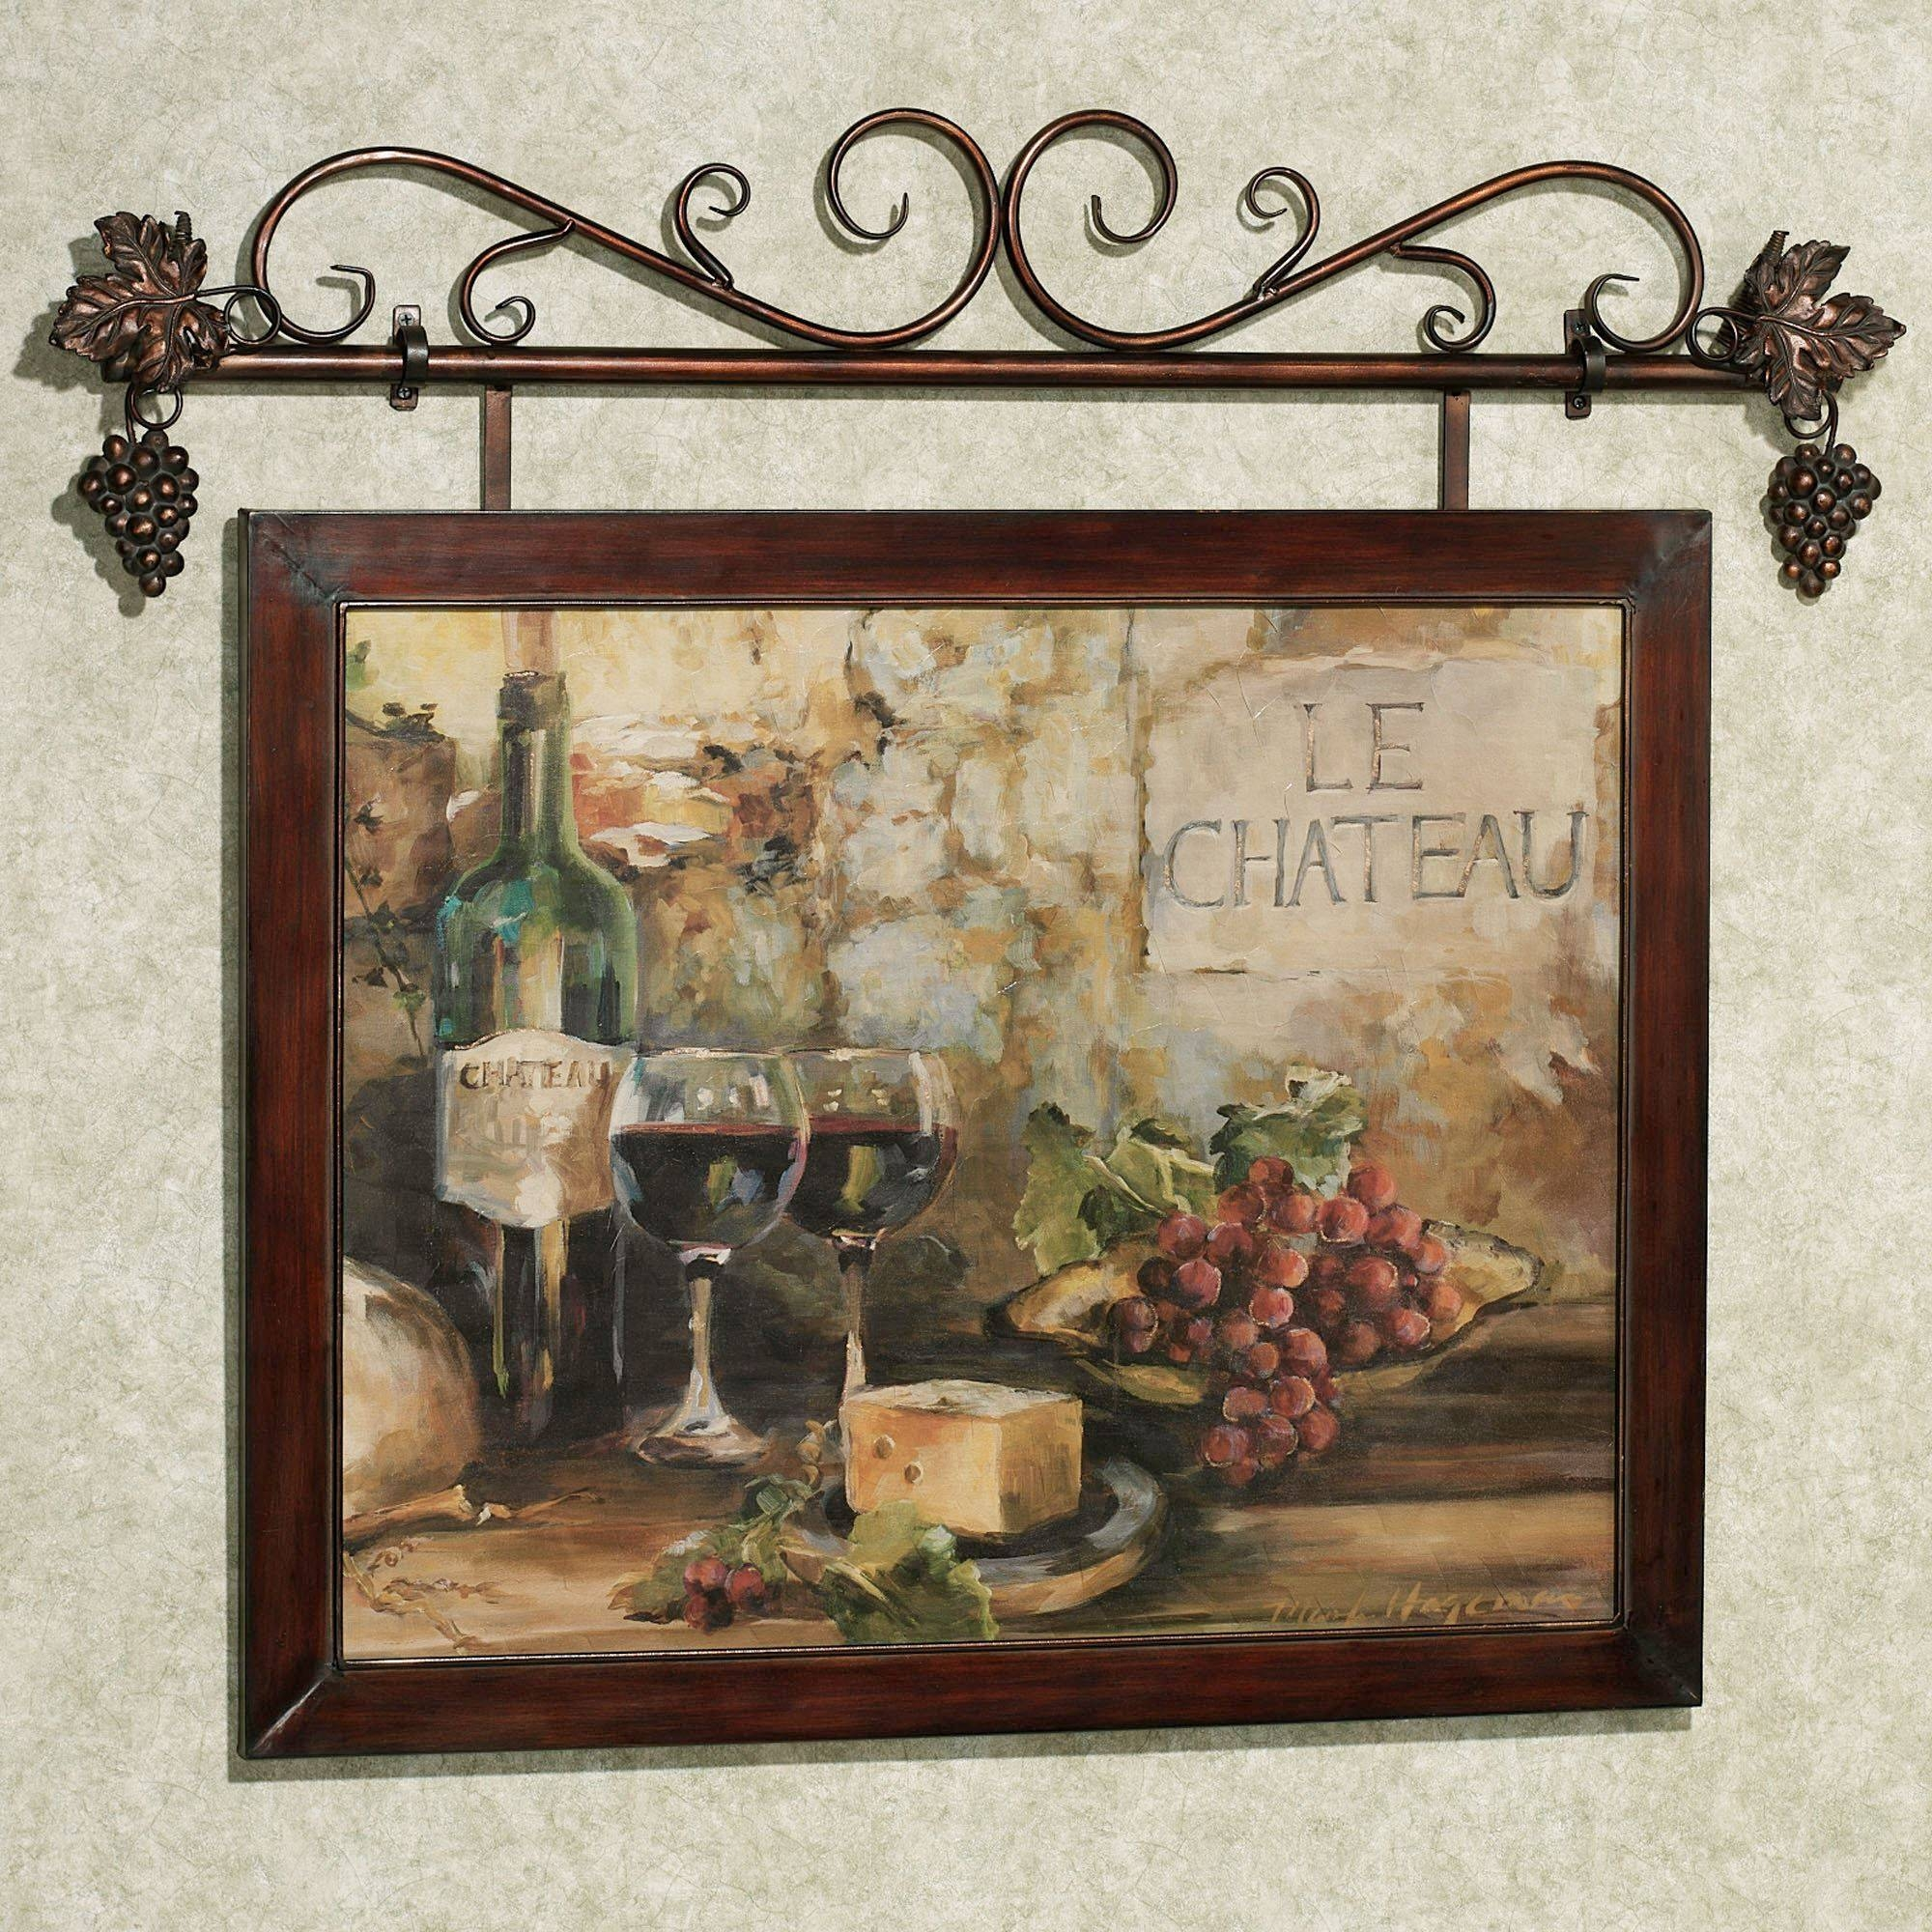 20 photos walmart framed art for Walmart art decor